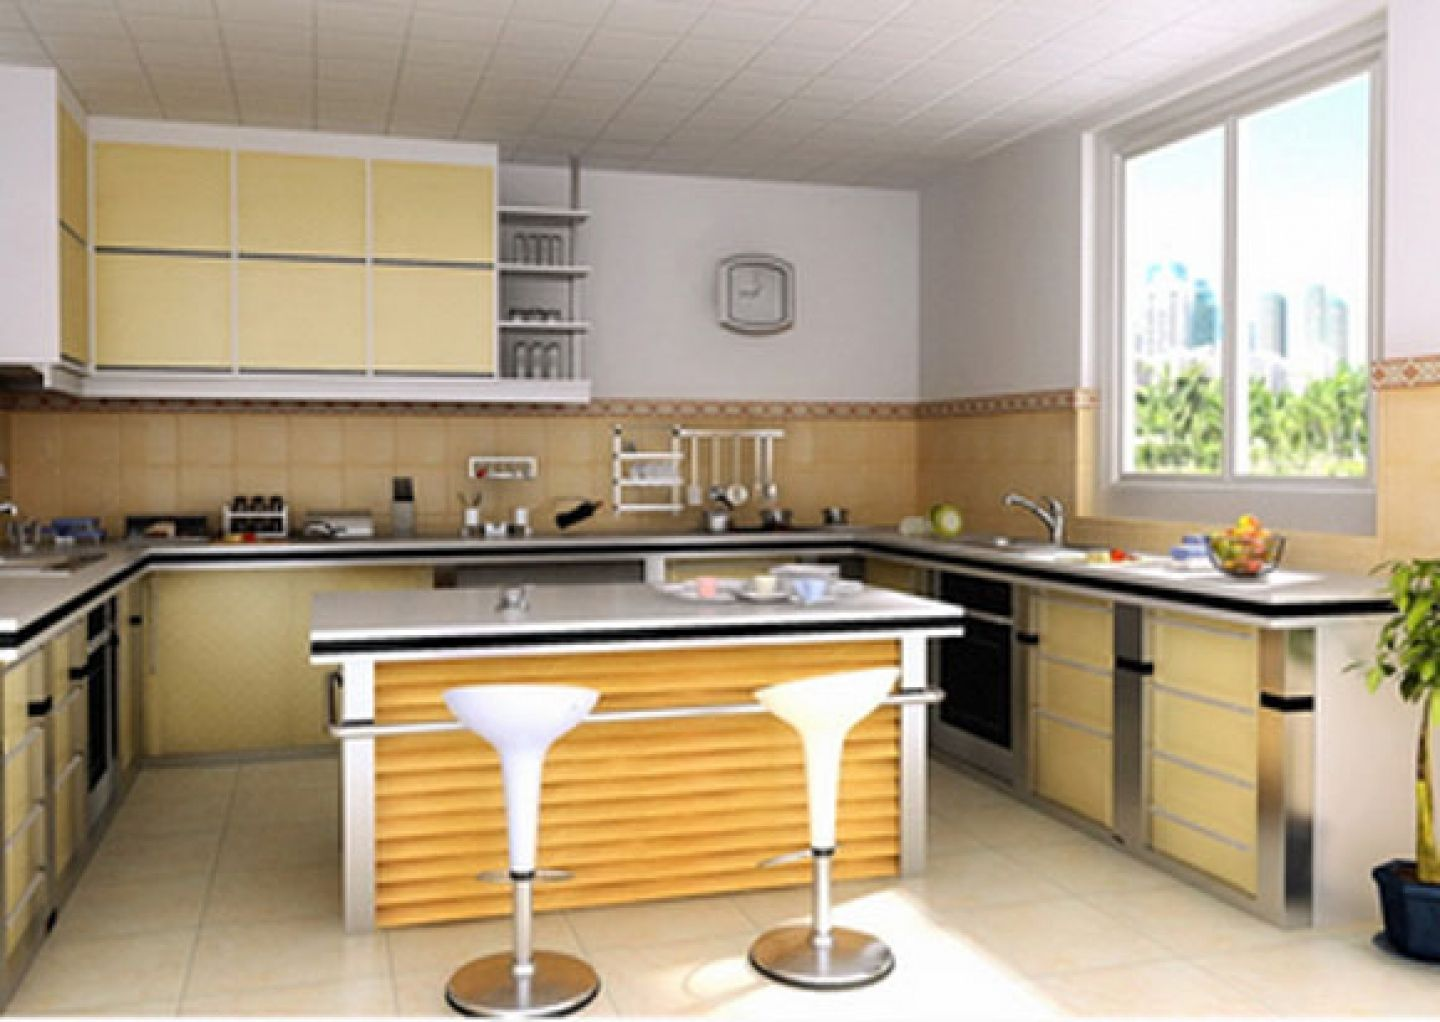 Design A Kitchen Online Free  Best Interior Wall Paint Check More Endearing Kitchen Designs Online Design Inspiration